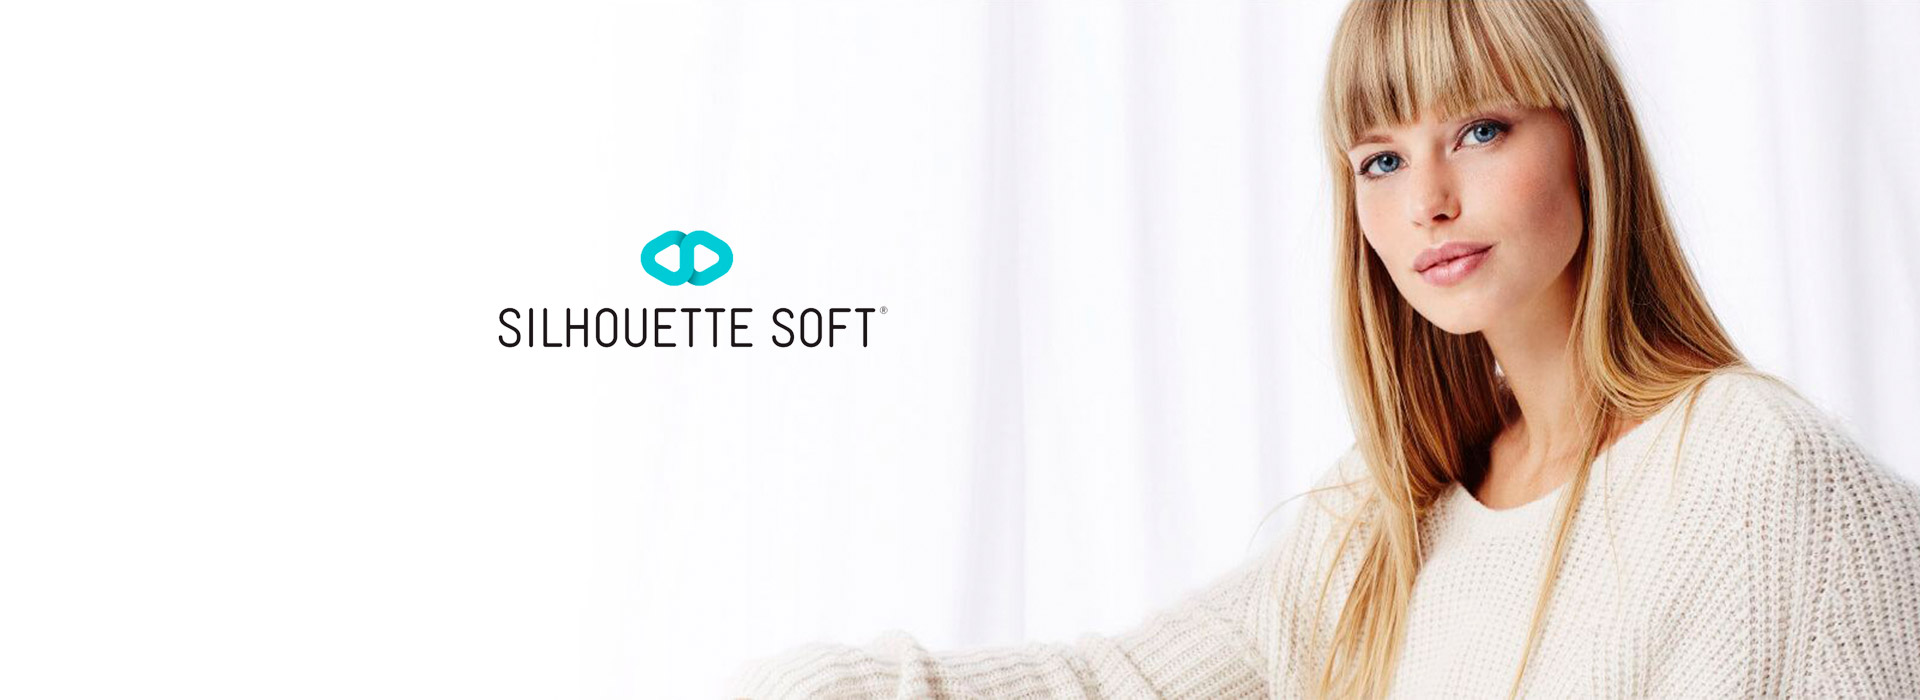 fadenlifting mit silhouette soft